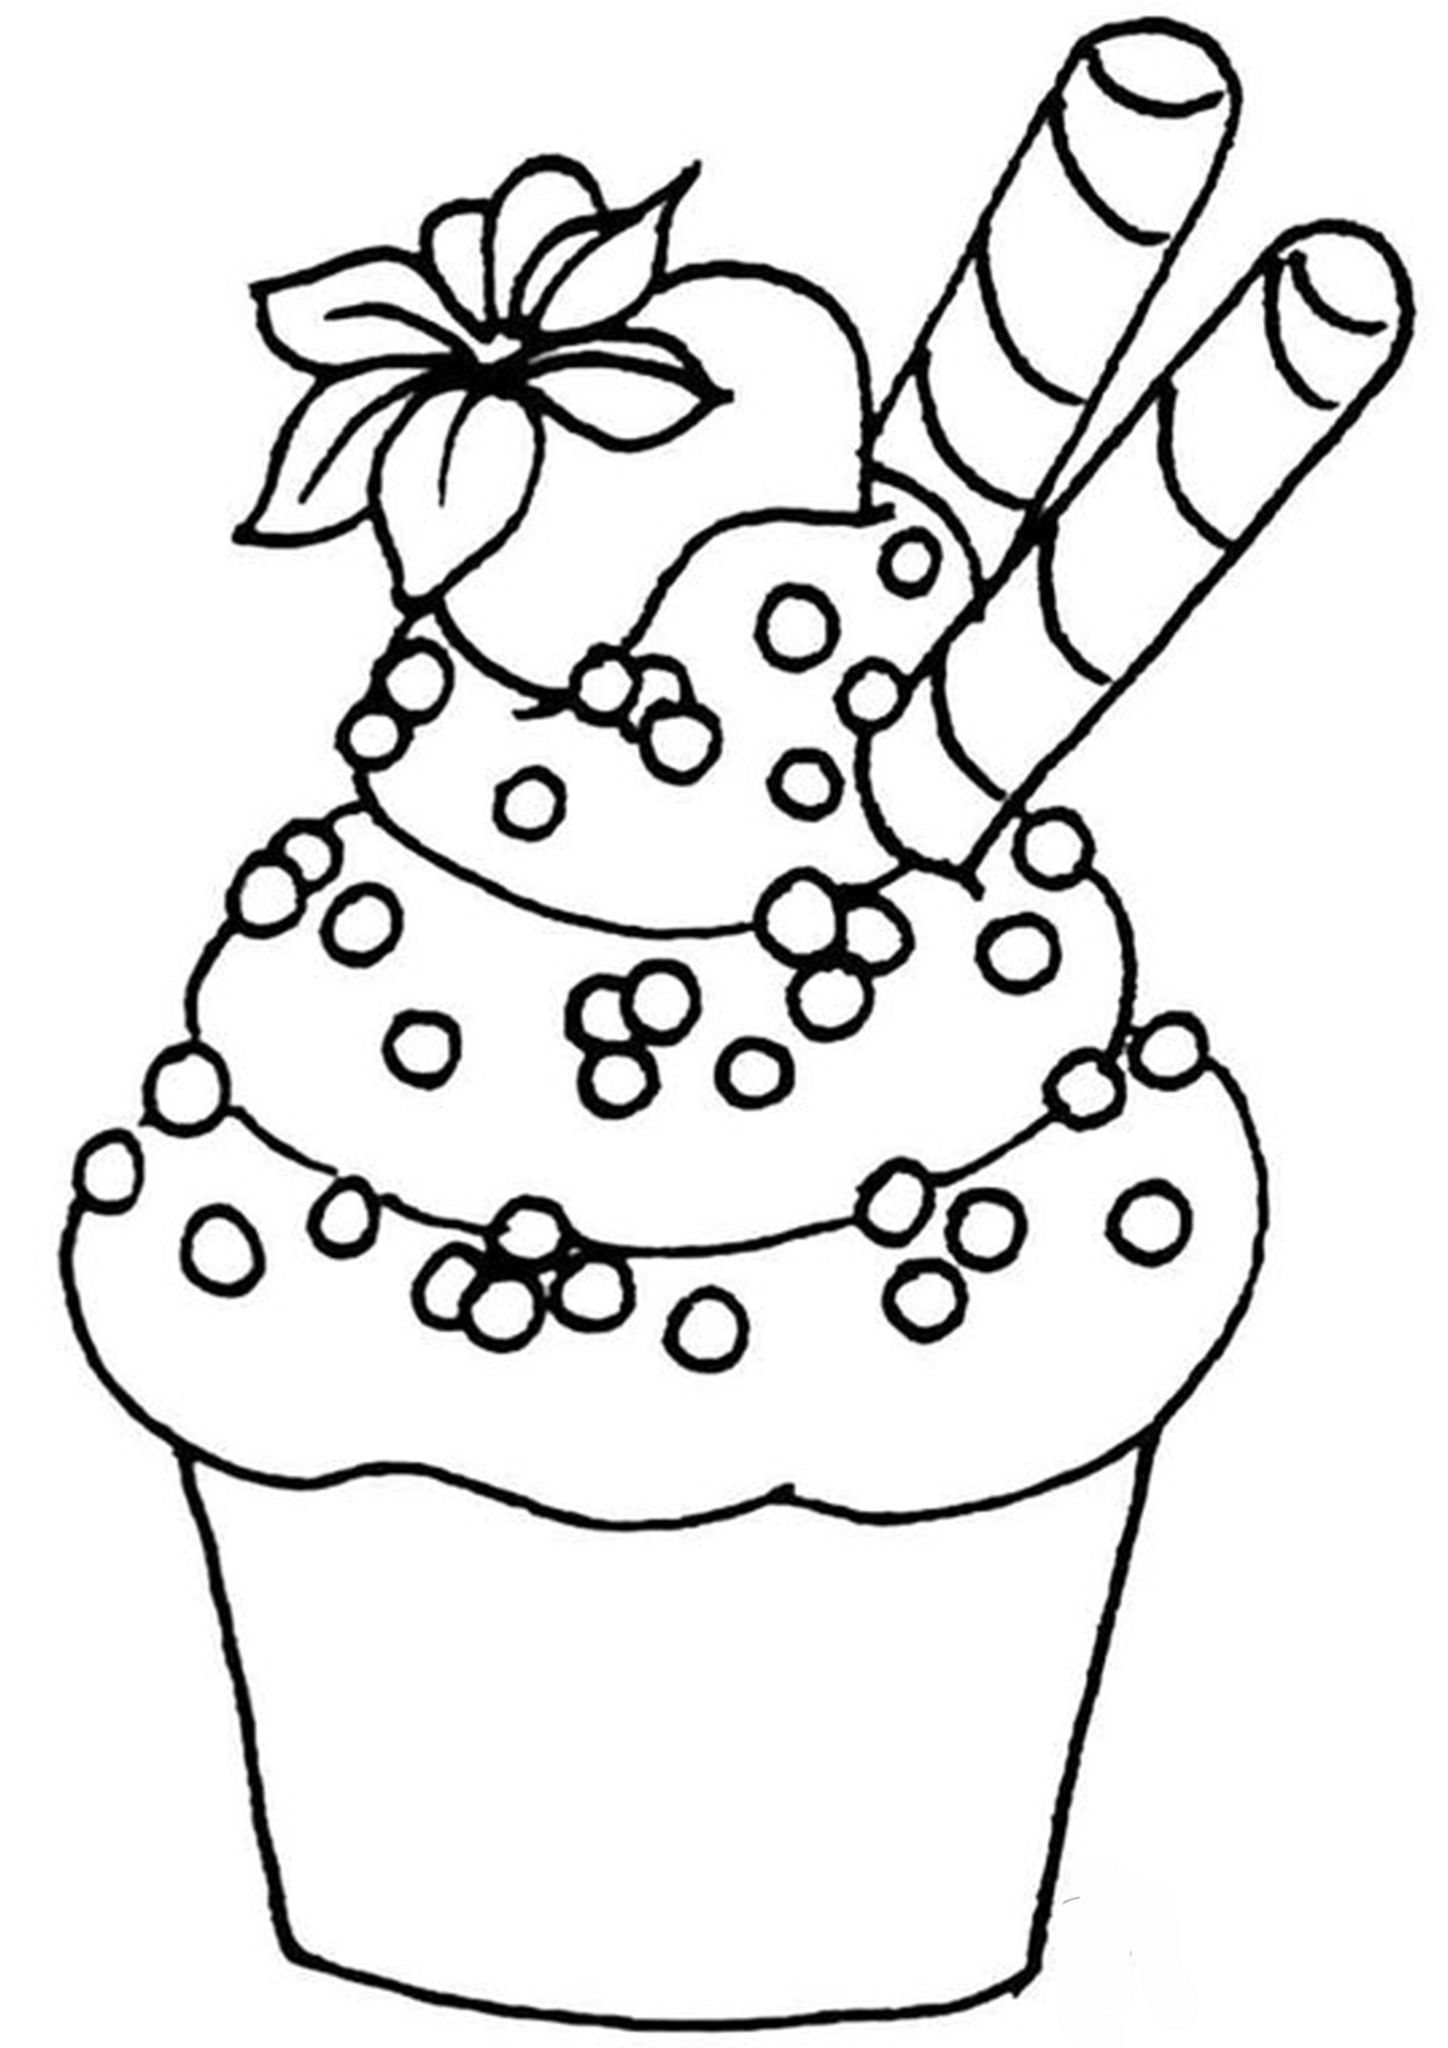 Free Easy To Print Cupcake Coloring Pages Cupcake Coloring Pages Coloring Pages Leaf Coloring Page